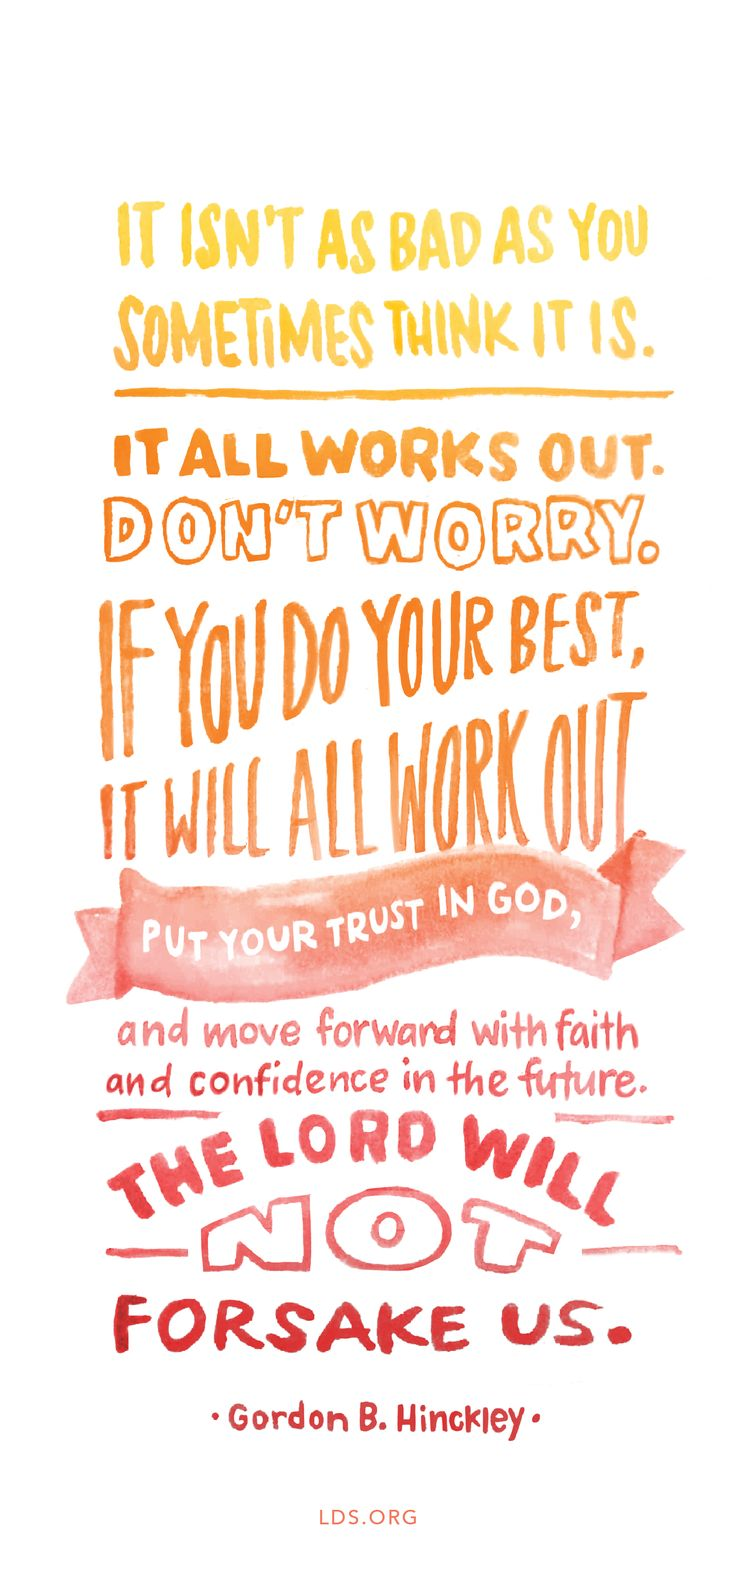 It will all work out.  A reminder we all need.